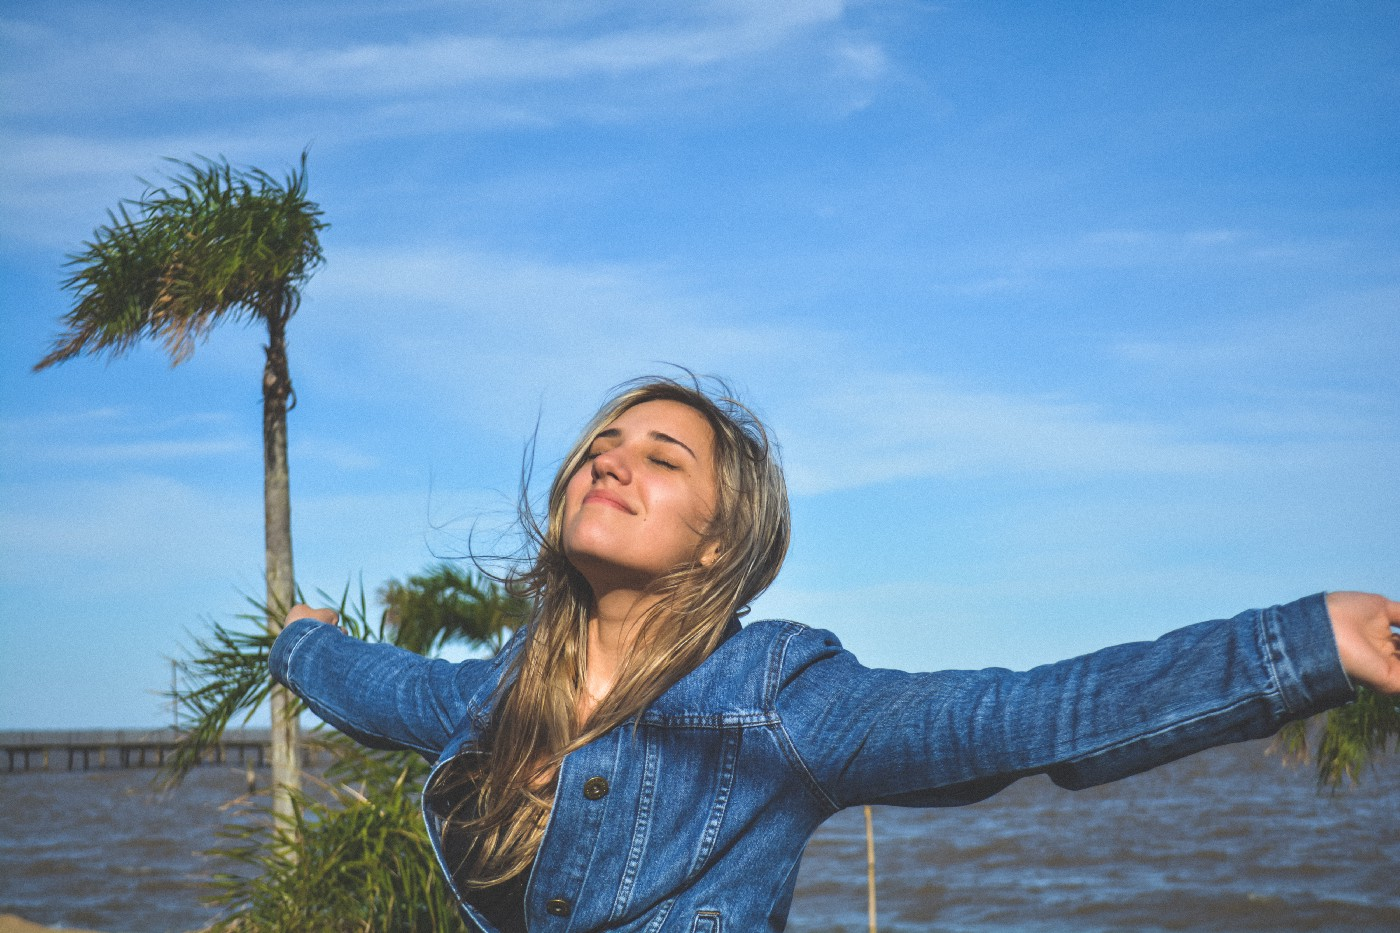 Woman standing with her arms outstretched, feeling happy and free.